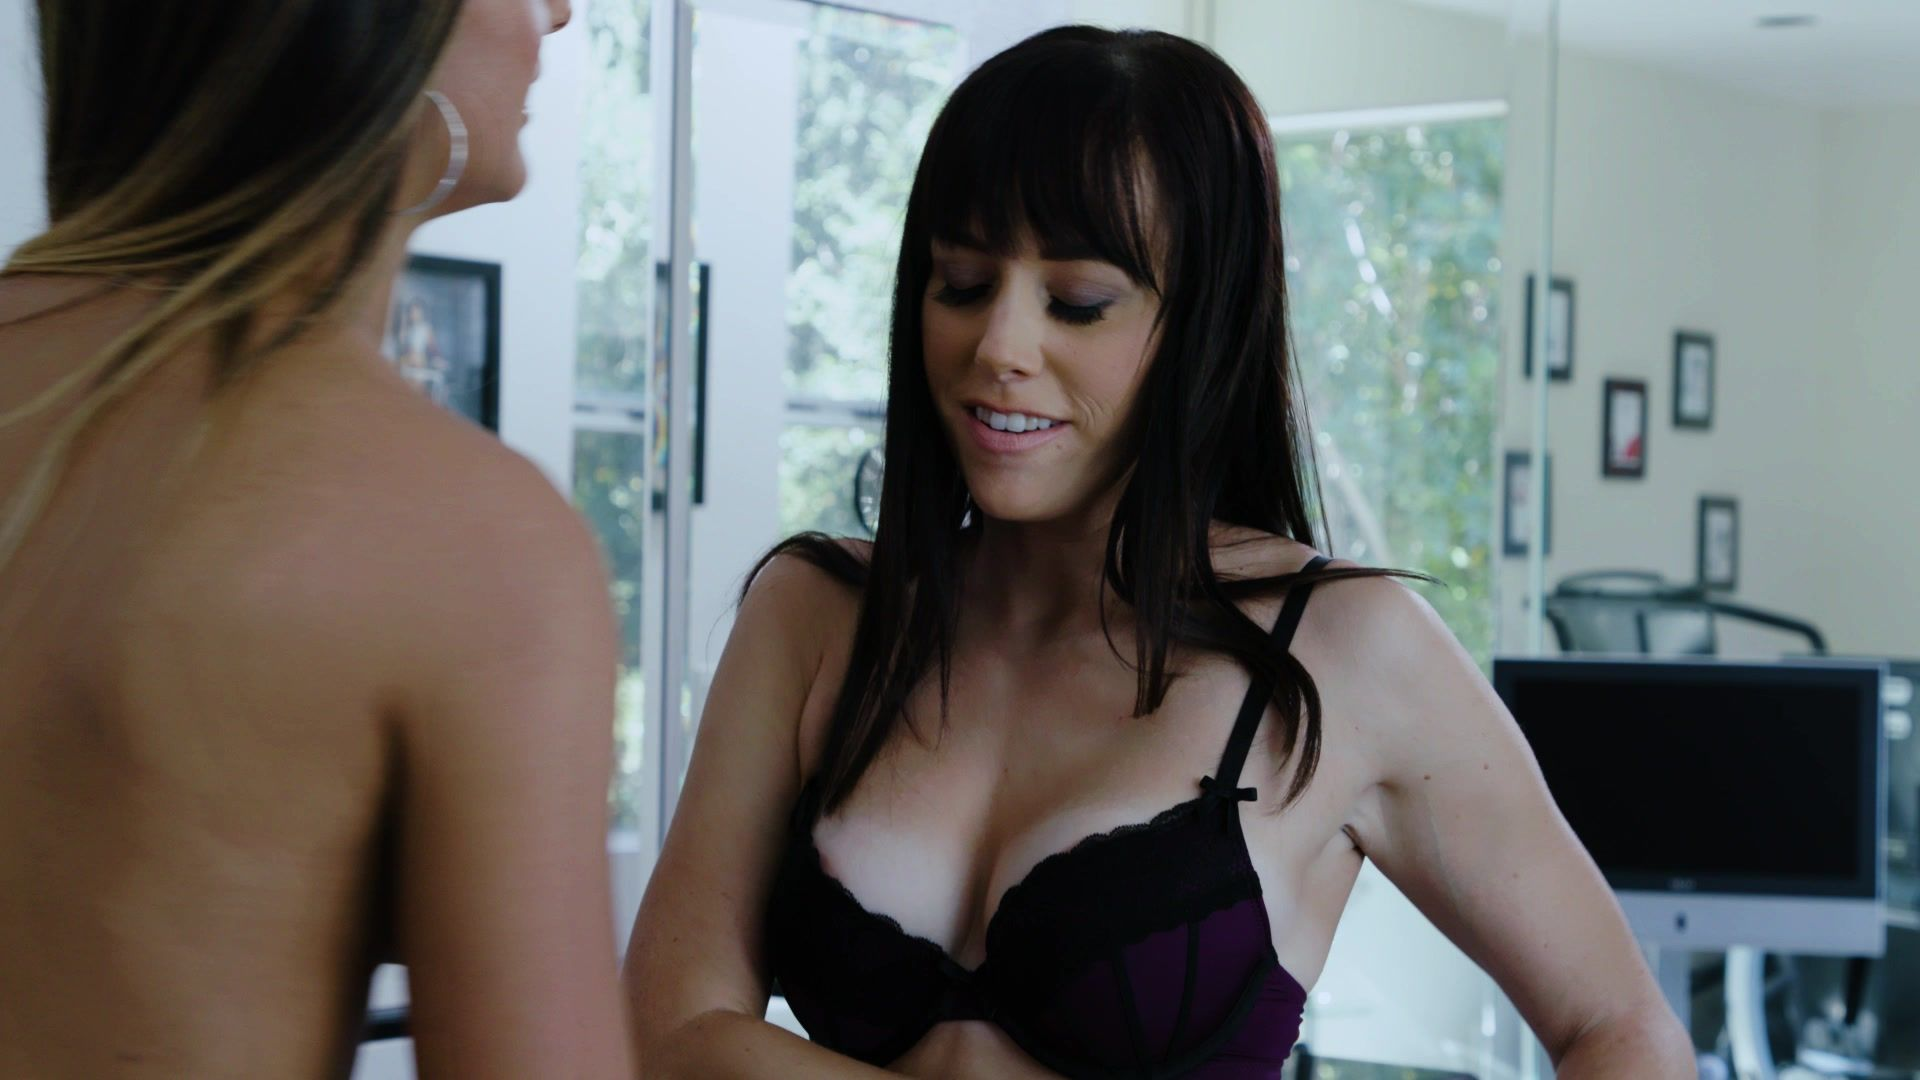 June Diane Raphael In The High Note - Film Nudes